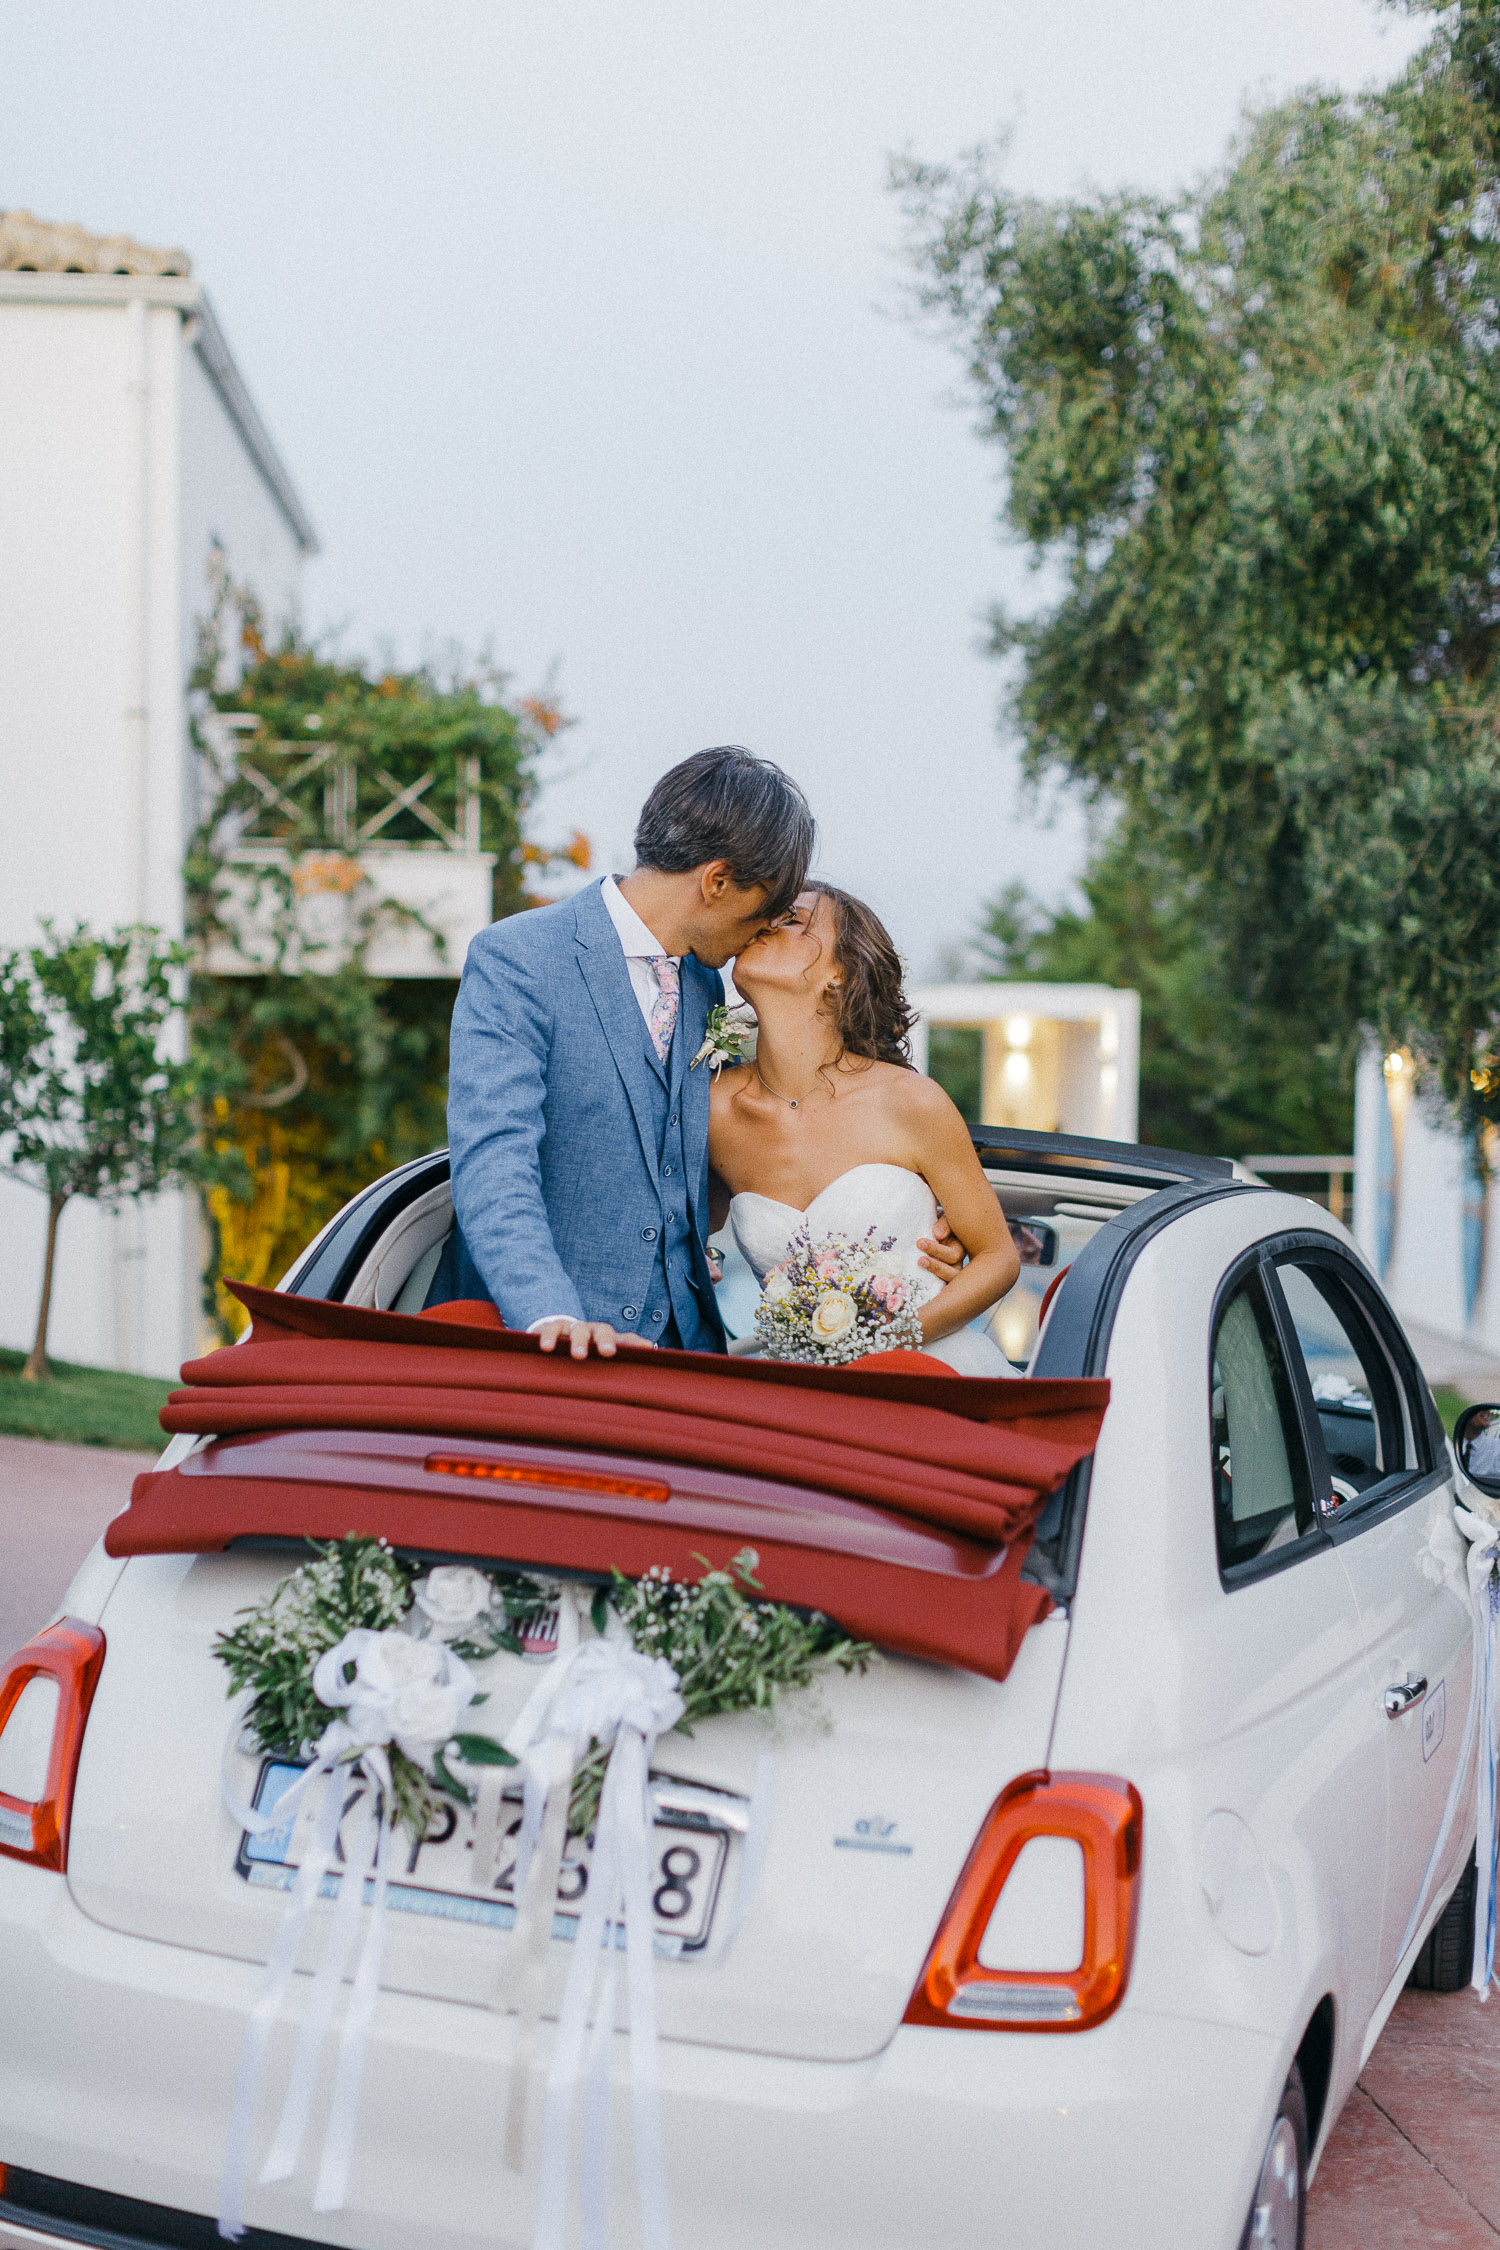 Couple kissing inside Fiat 500 wedding wheels while arriving at wedding venue